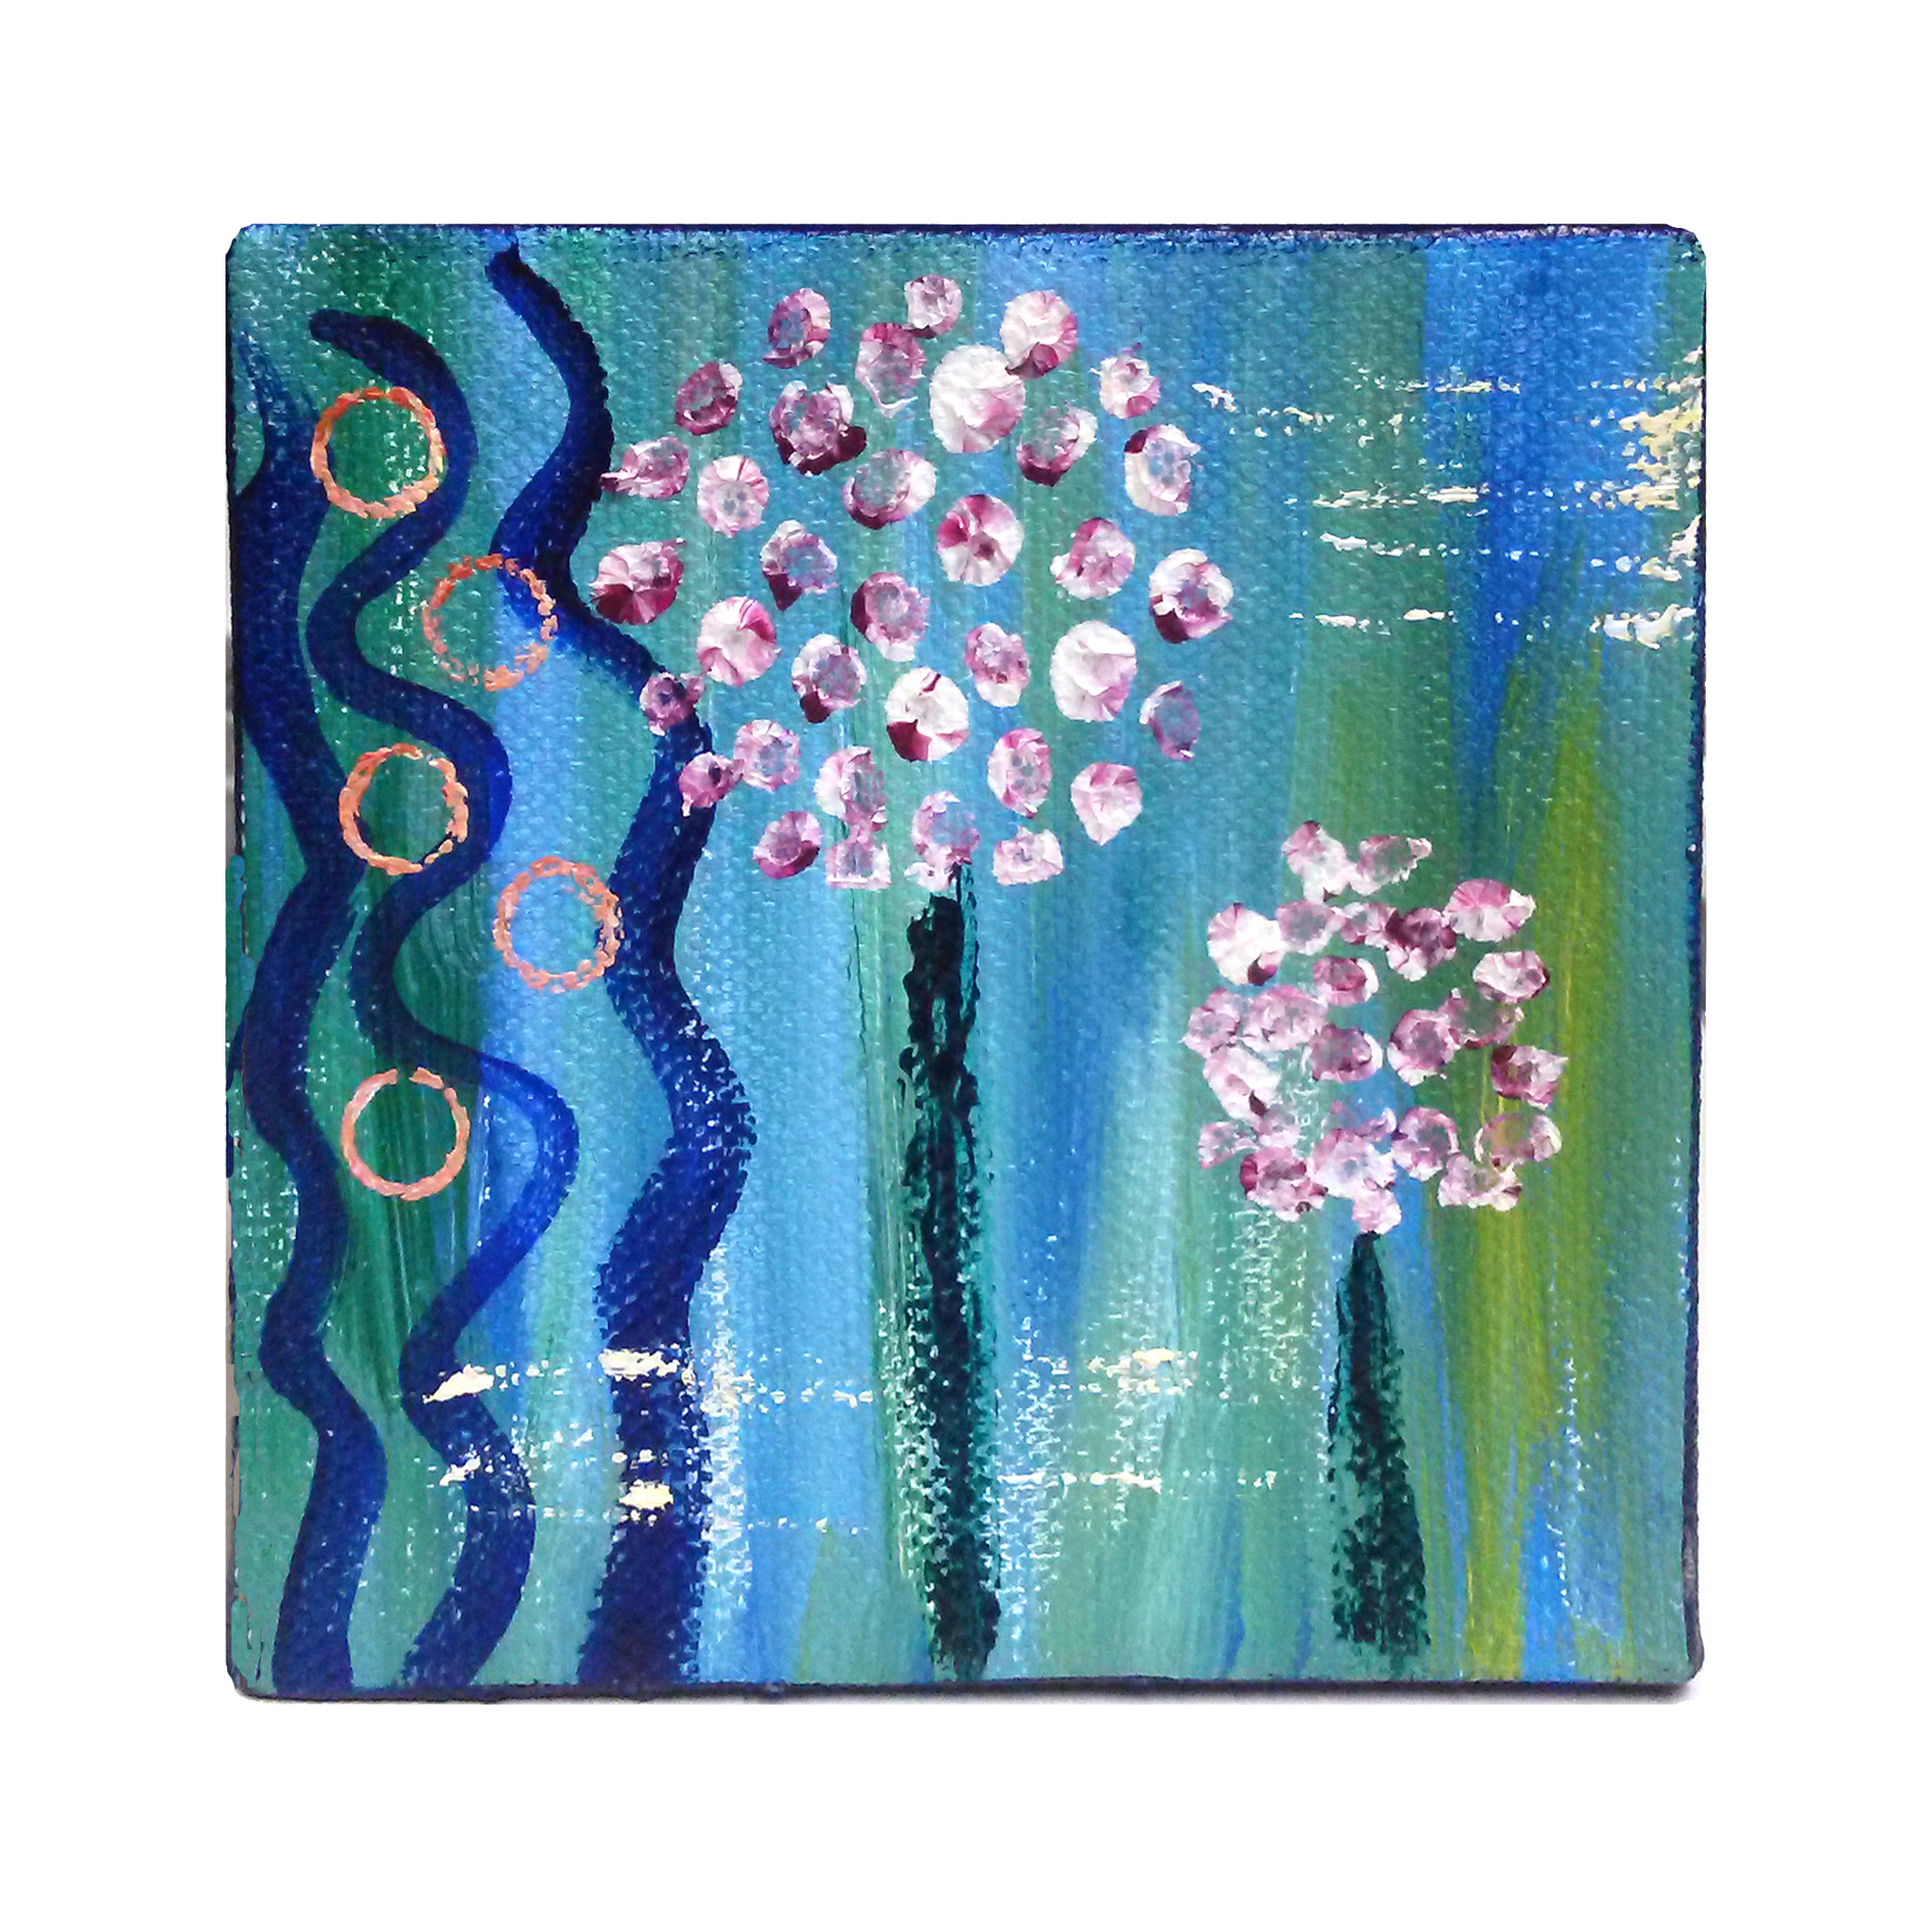 flower painting - Dance of the Dandelions - Effortlessly Eclectic